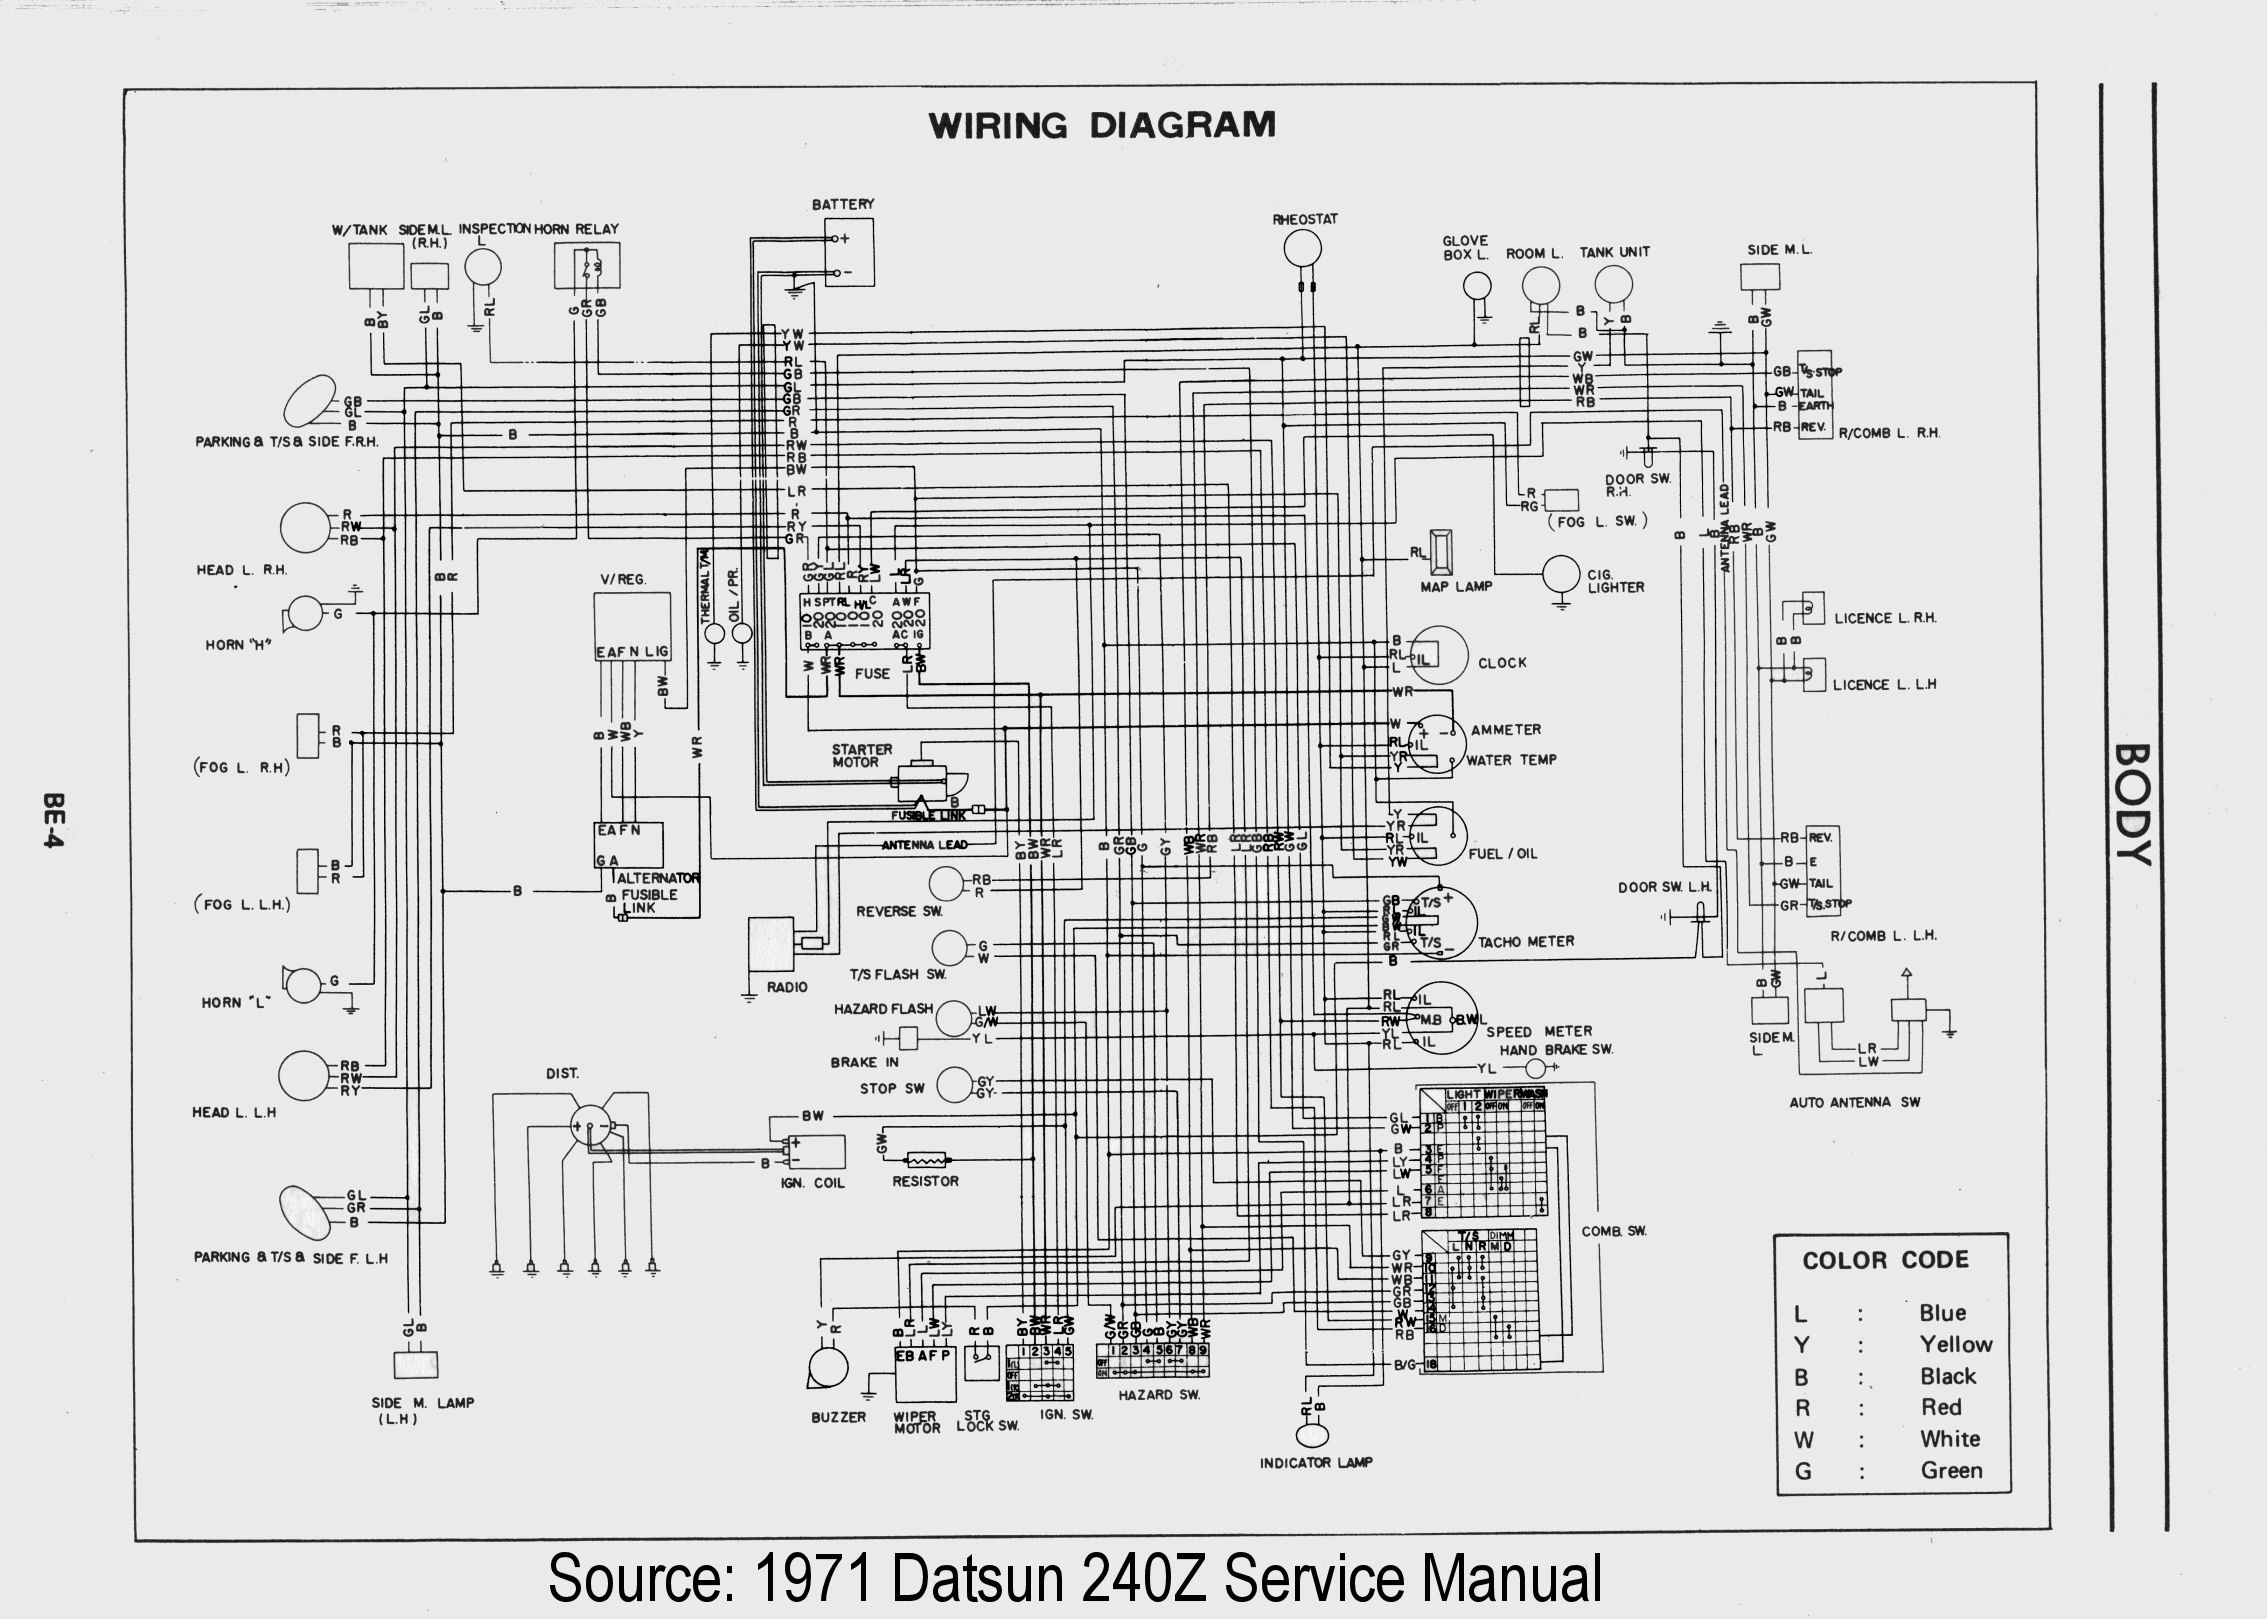 Wiring Diagram HiRes 2 240z wiring diagram fuel pump diagram \u2022 wiring diagrams j squared co datsun 620 wiring harness at creativeand.co